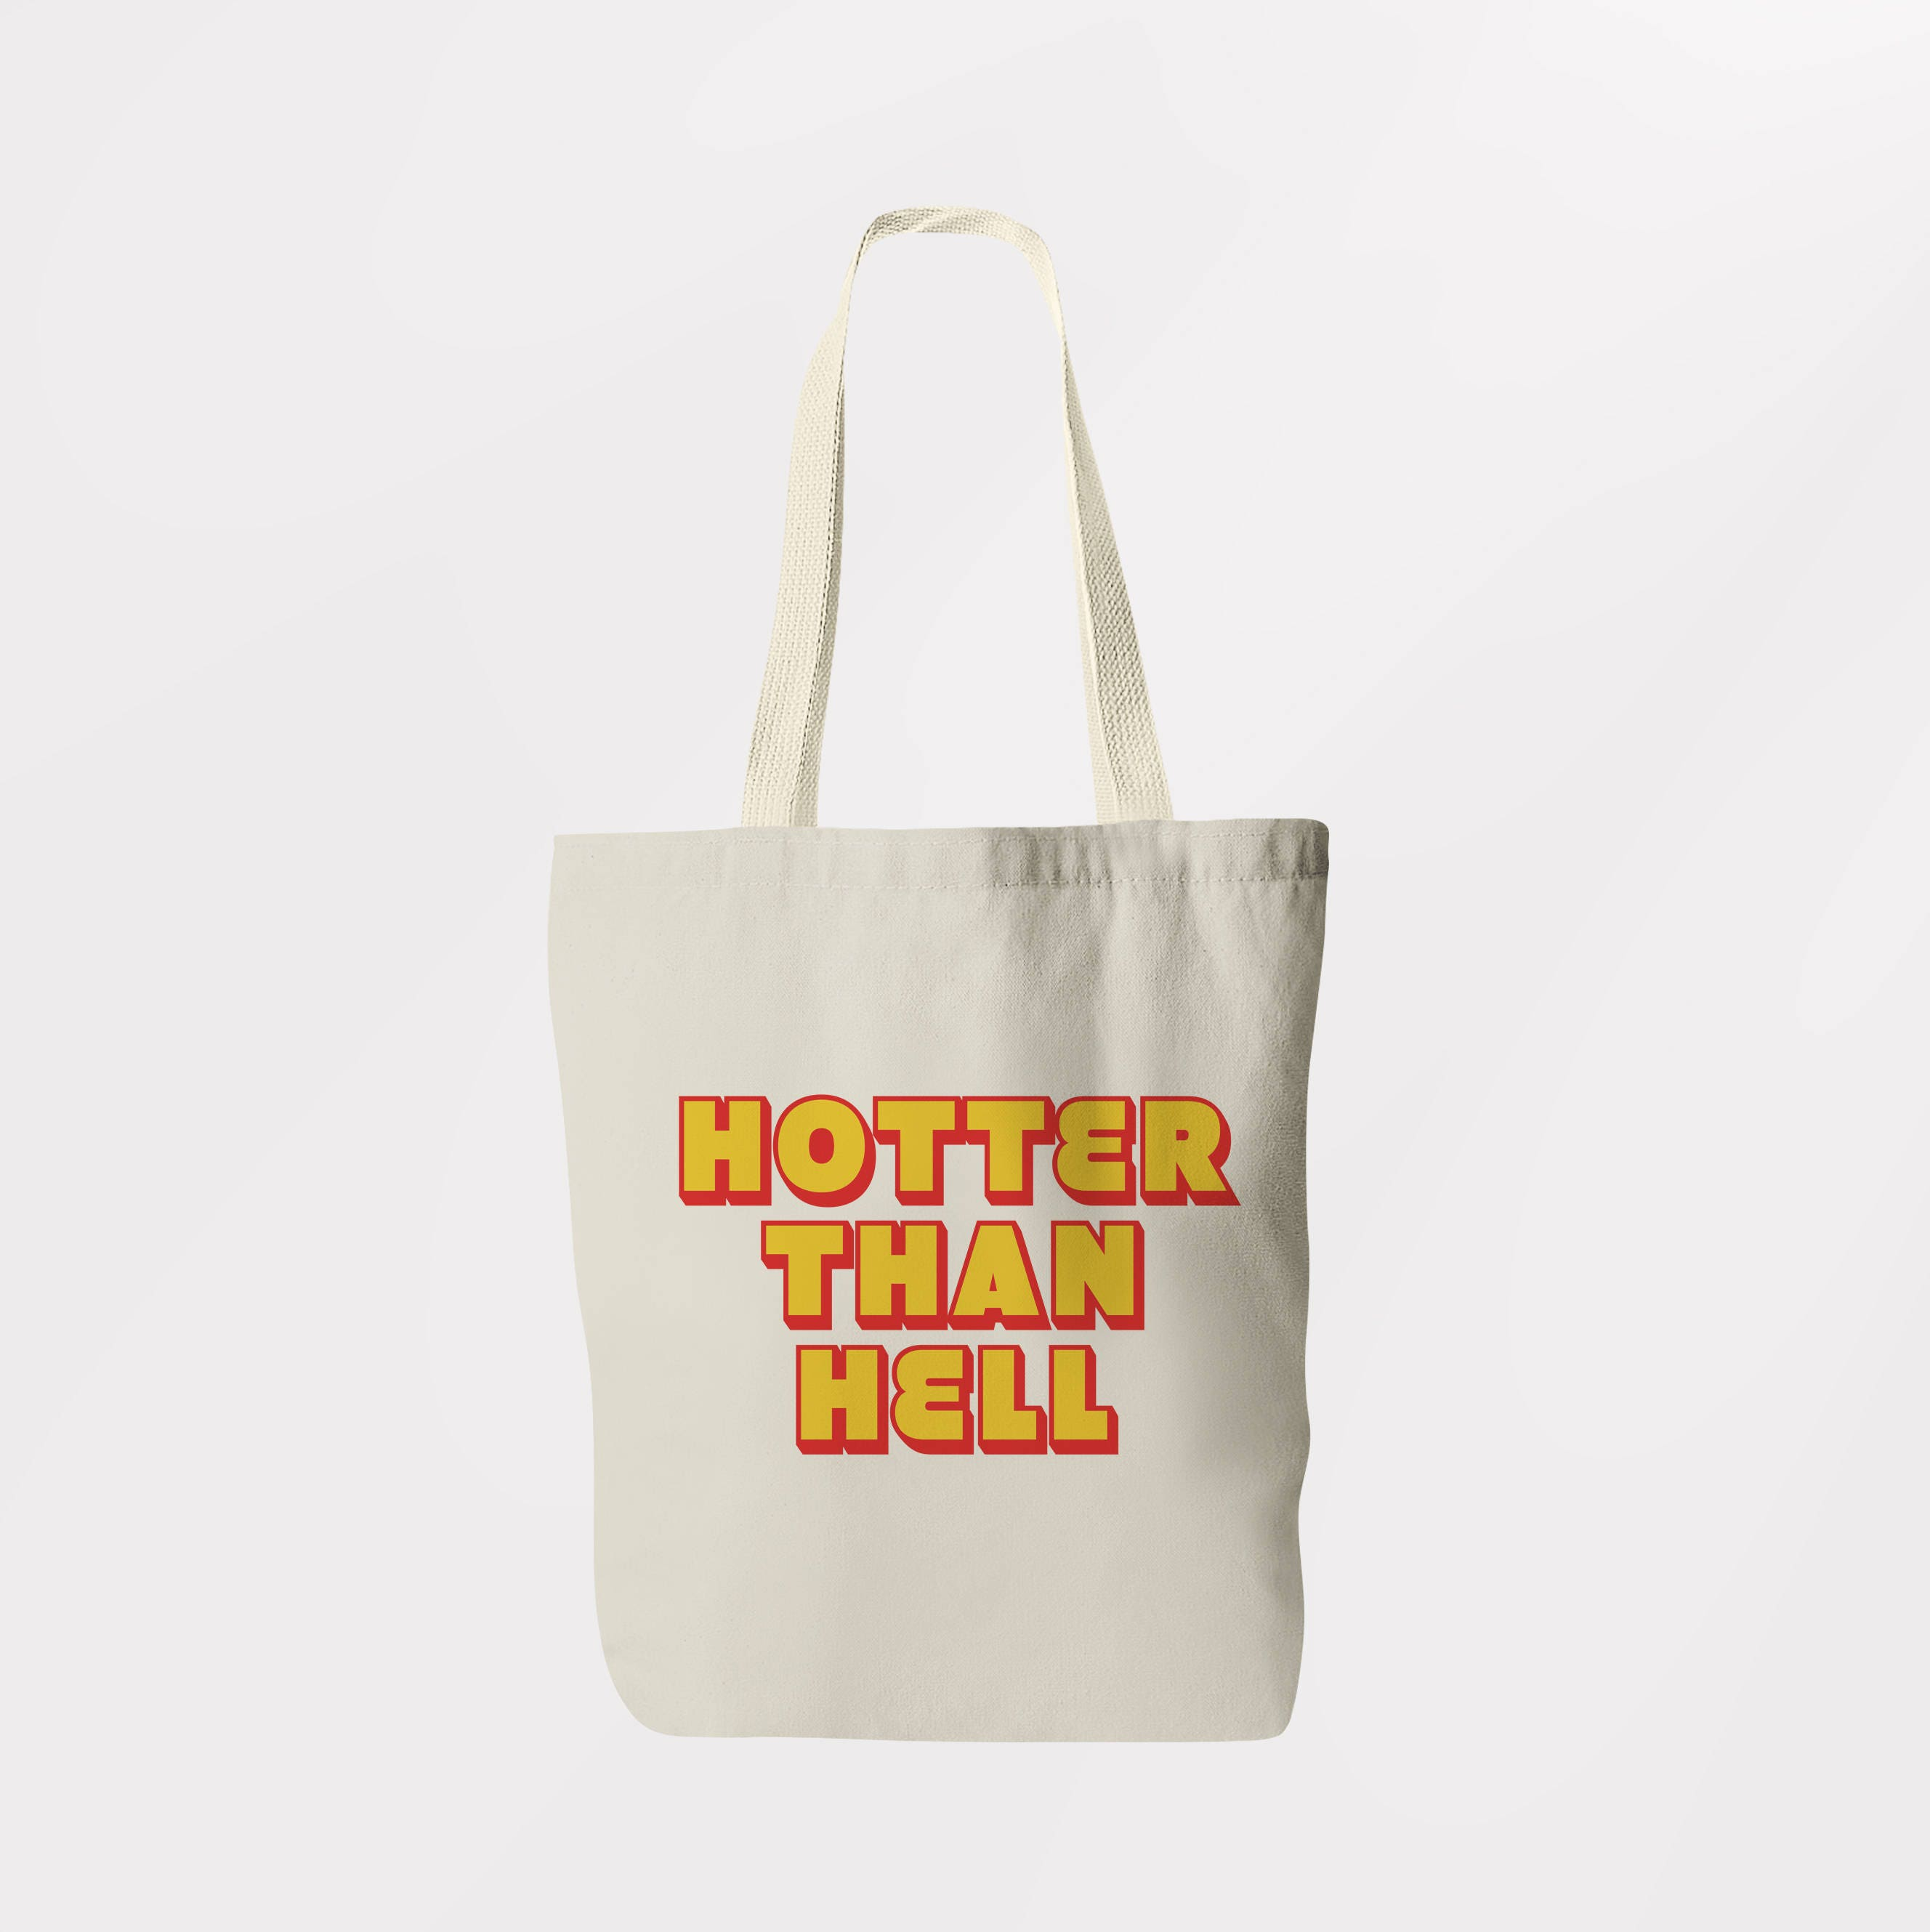 Hotter Than Hell Tote Bag  Shoulder Bag  Book Bag  Shopping Sachel  Graphic Logo Eco Friendly Bag